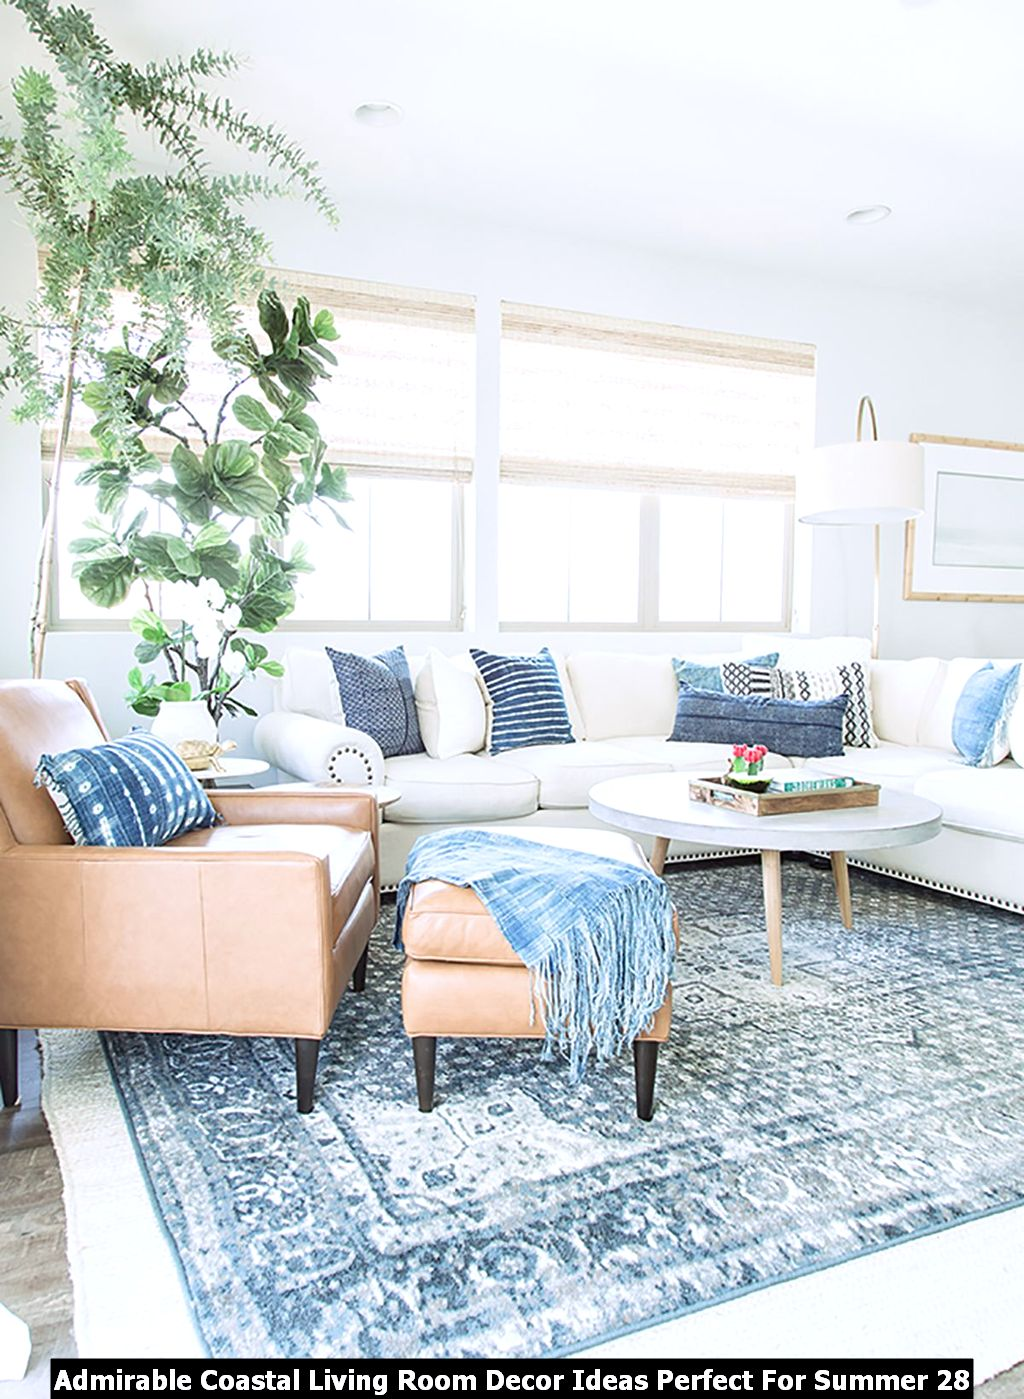 Admirable Coastal Living Room Decor Ideas Perfect For Summer 28